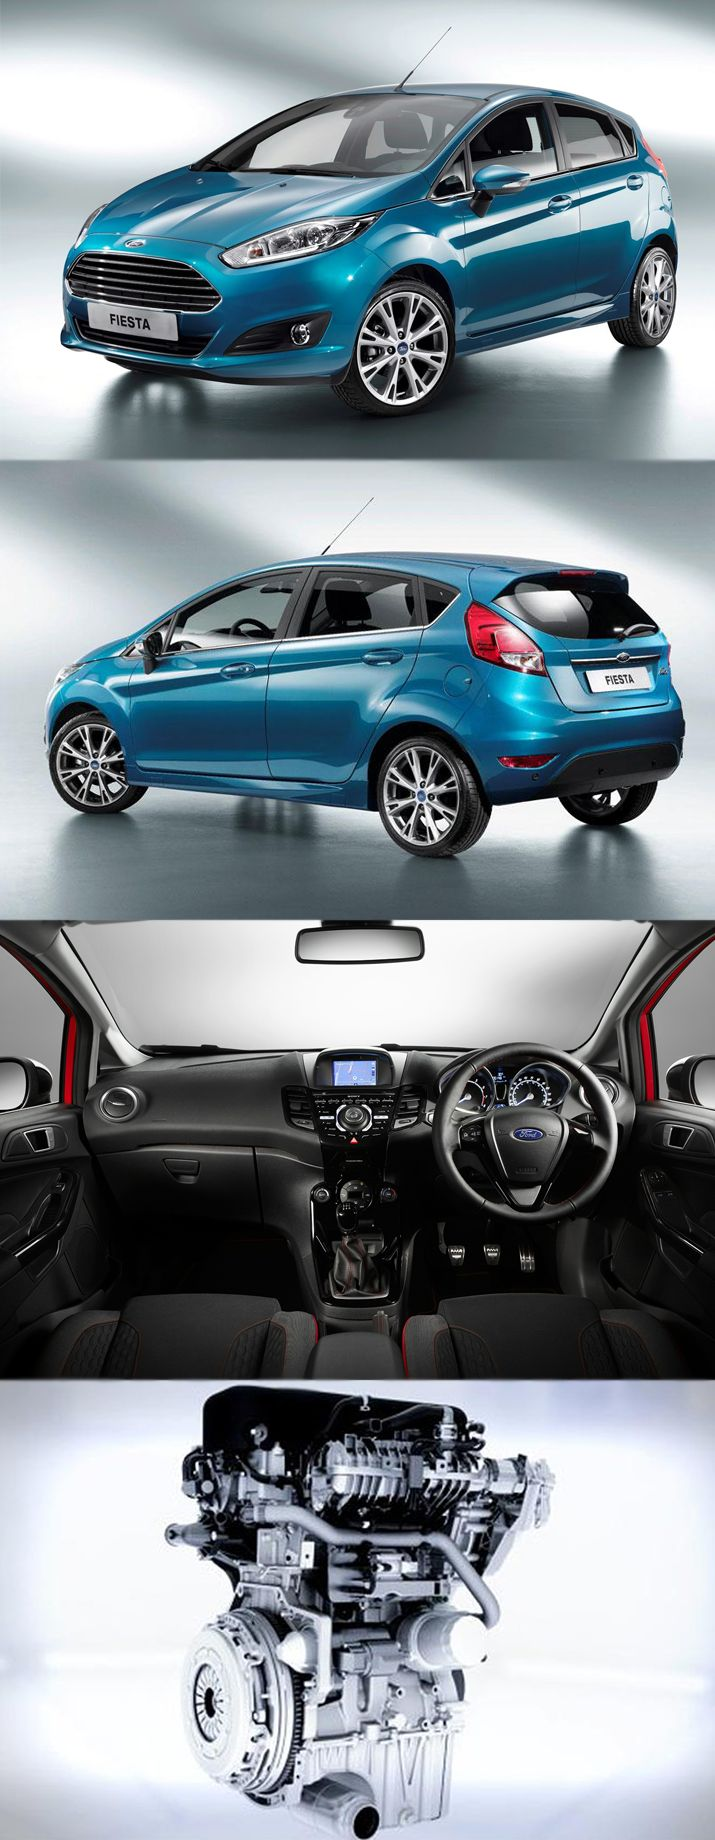 Ford fiesta with new technology ford fiesta technology engine http